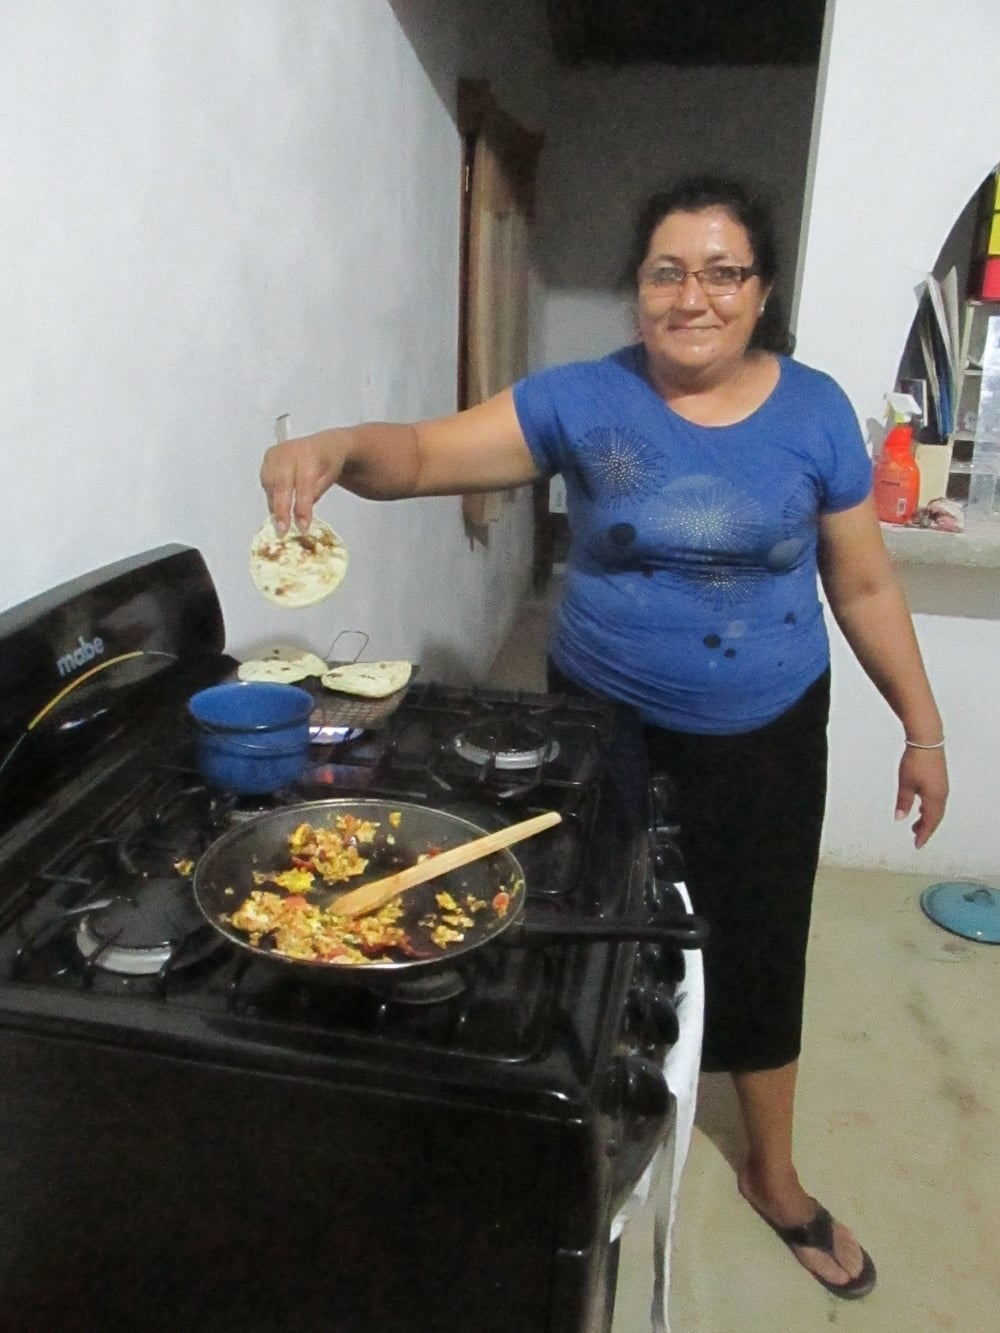 Mireira shows off her delicious corn tortillas.